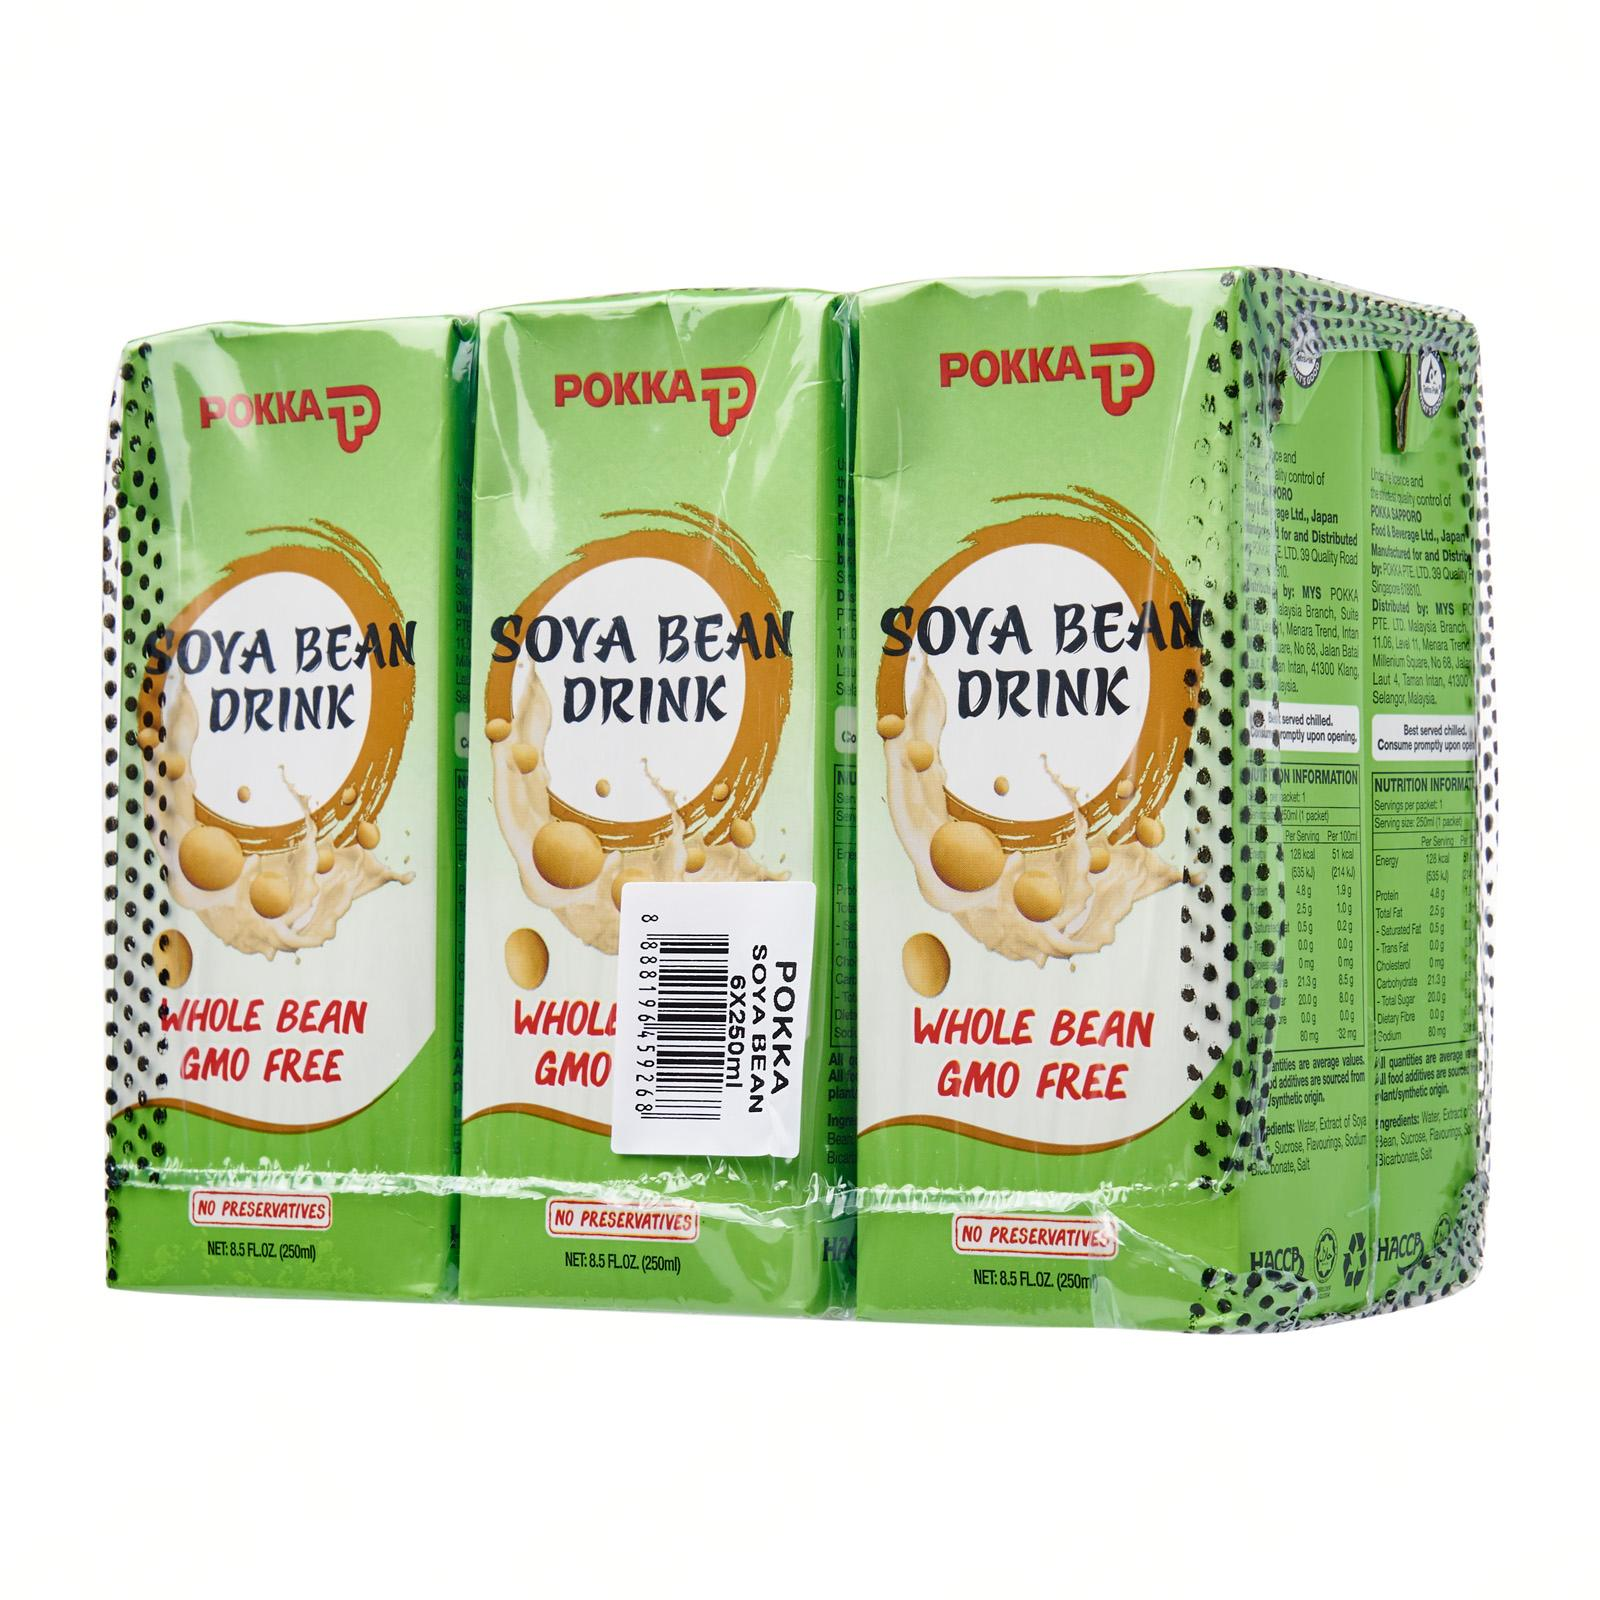 Pokka Soya Bean Drink (6 x 250ML)